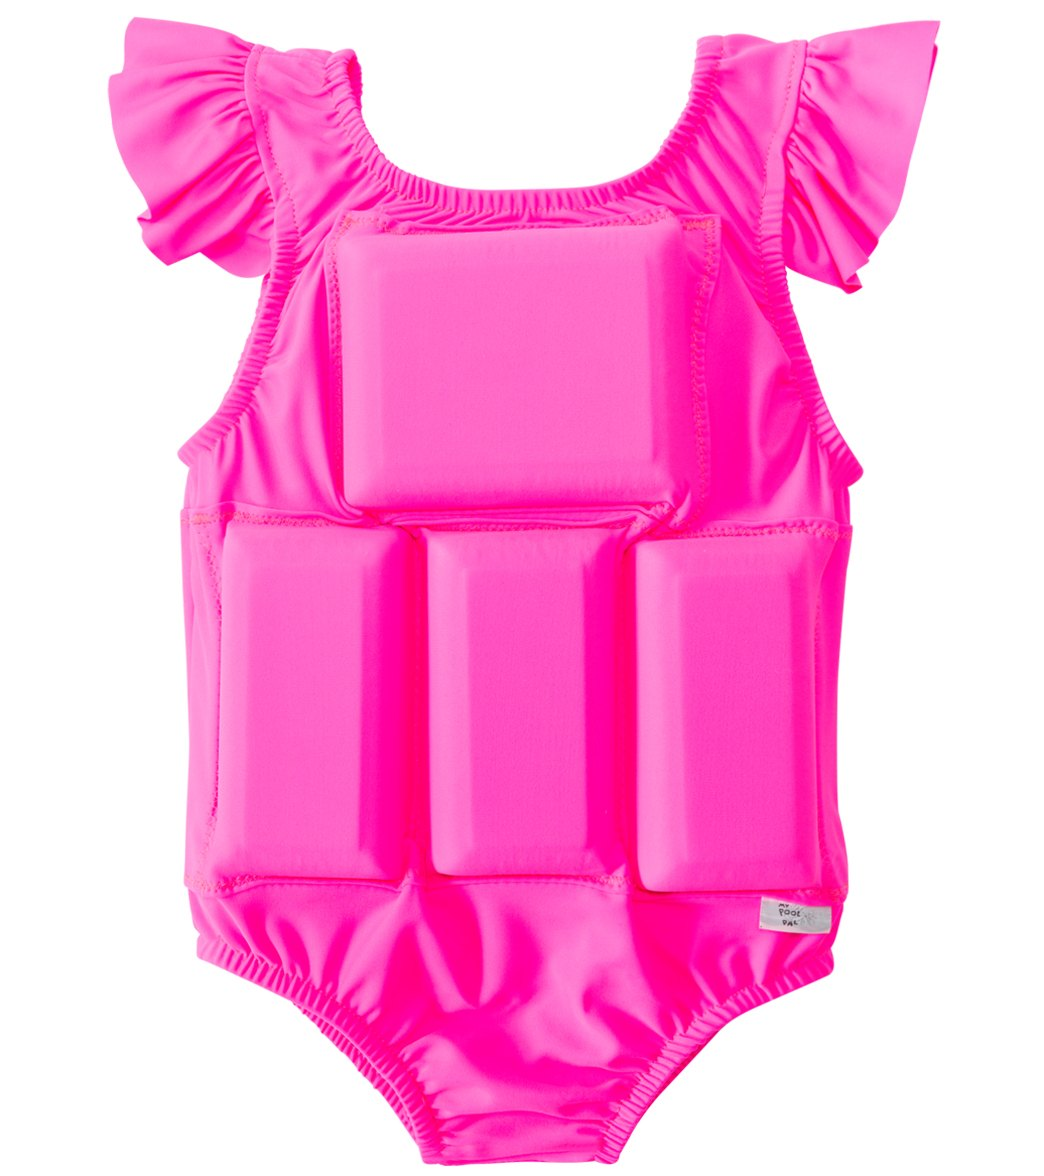 9c0477a0ab My Pool Pal Girls' Hot Pink Princess Floatation Swimsuit at SwimOutlet.com  - Free Shipping